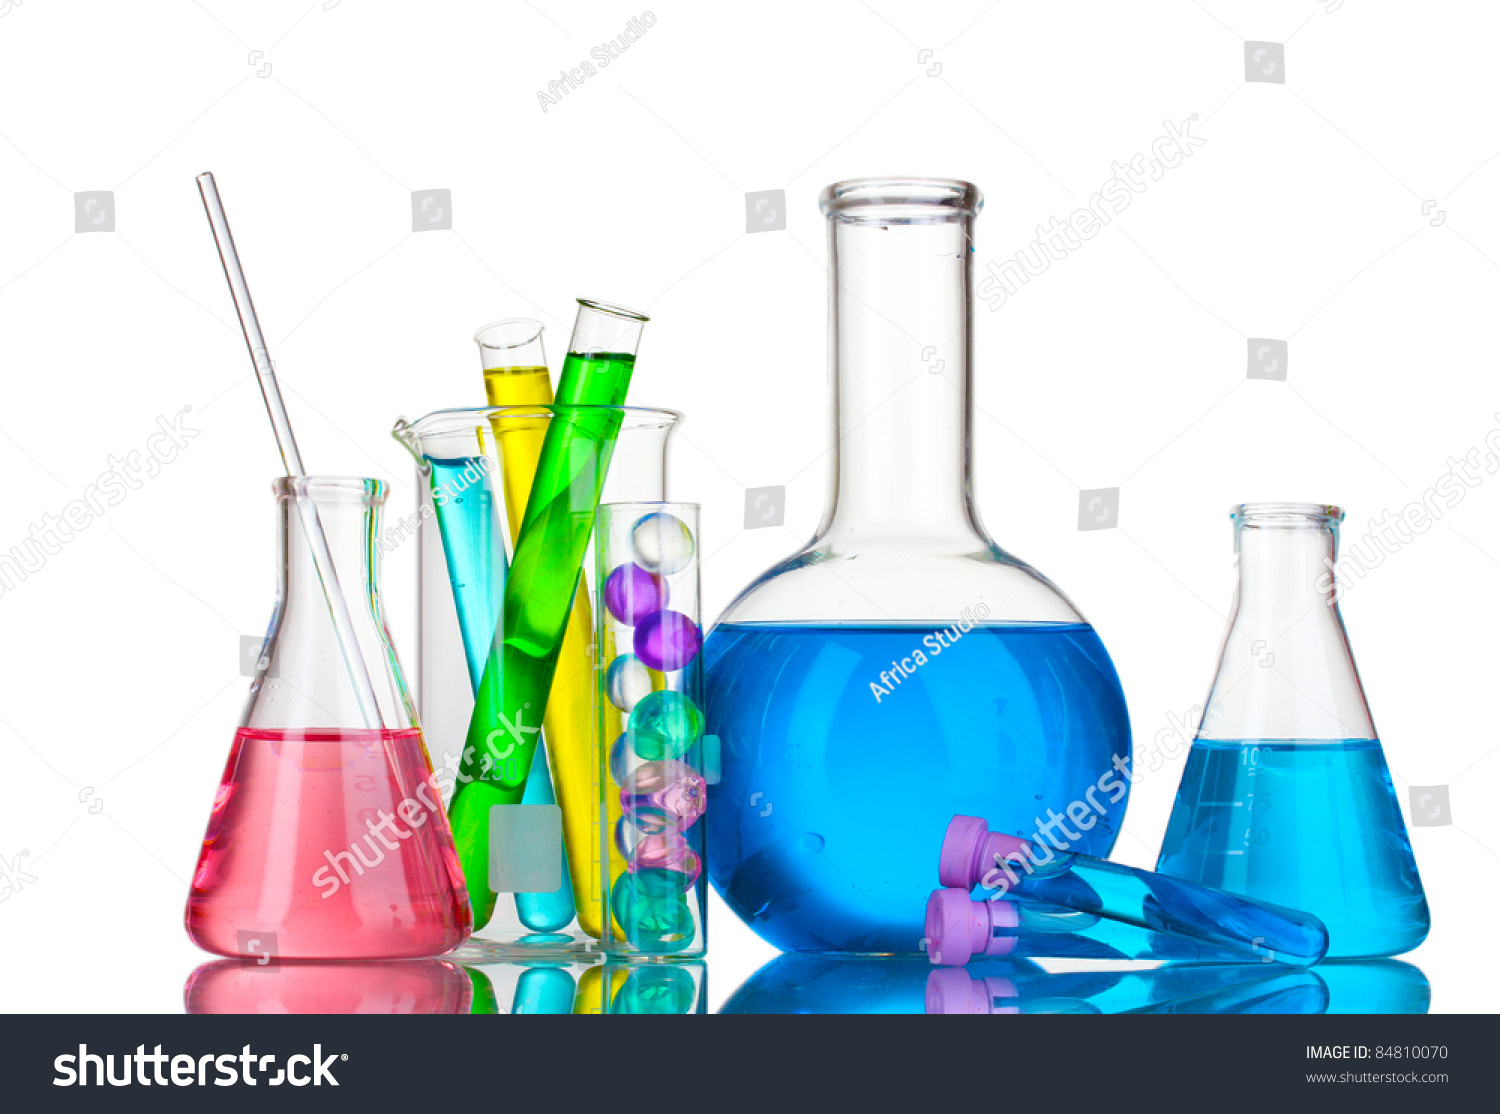 Test-Tubes With Liquid On Gray Background Stock Photo 84810070 : Shutterstock